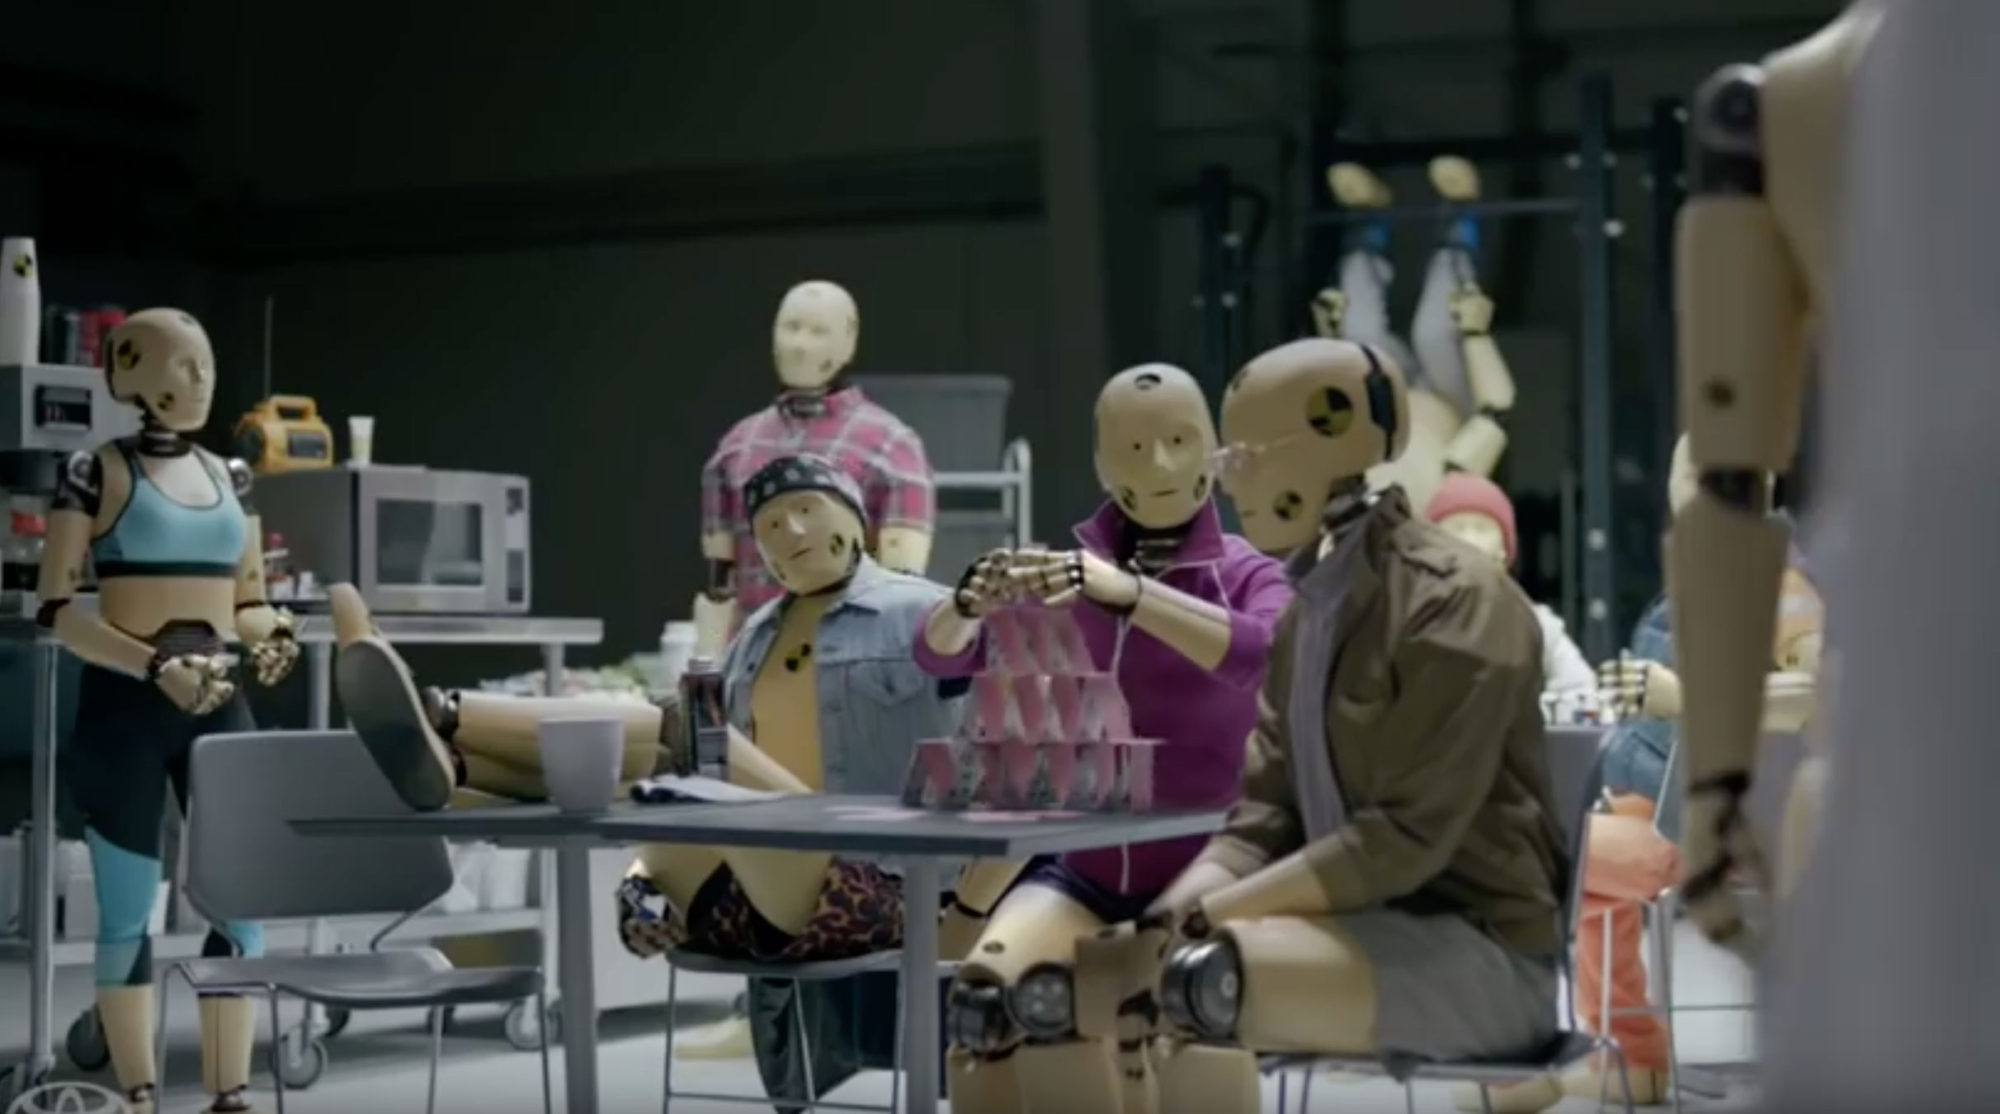 Toyota Safety Sense Crash Test Dummies Bodin Sterba Design Originally Posted By Dummy Screen Shot From